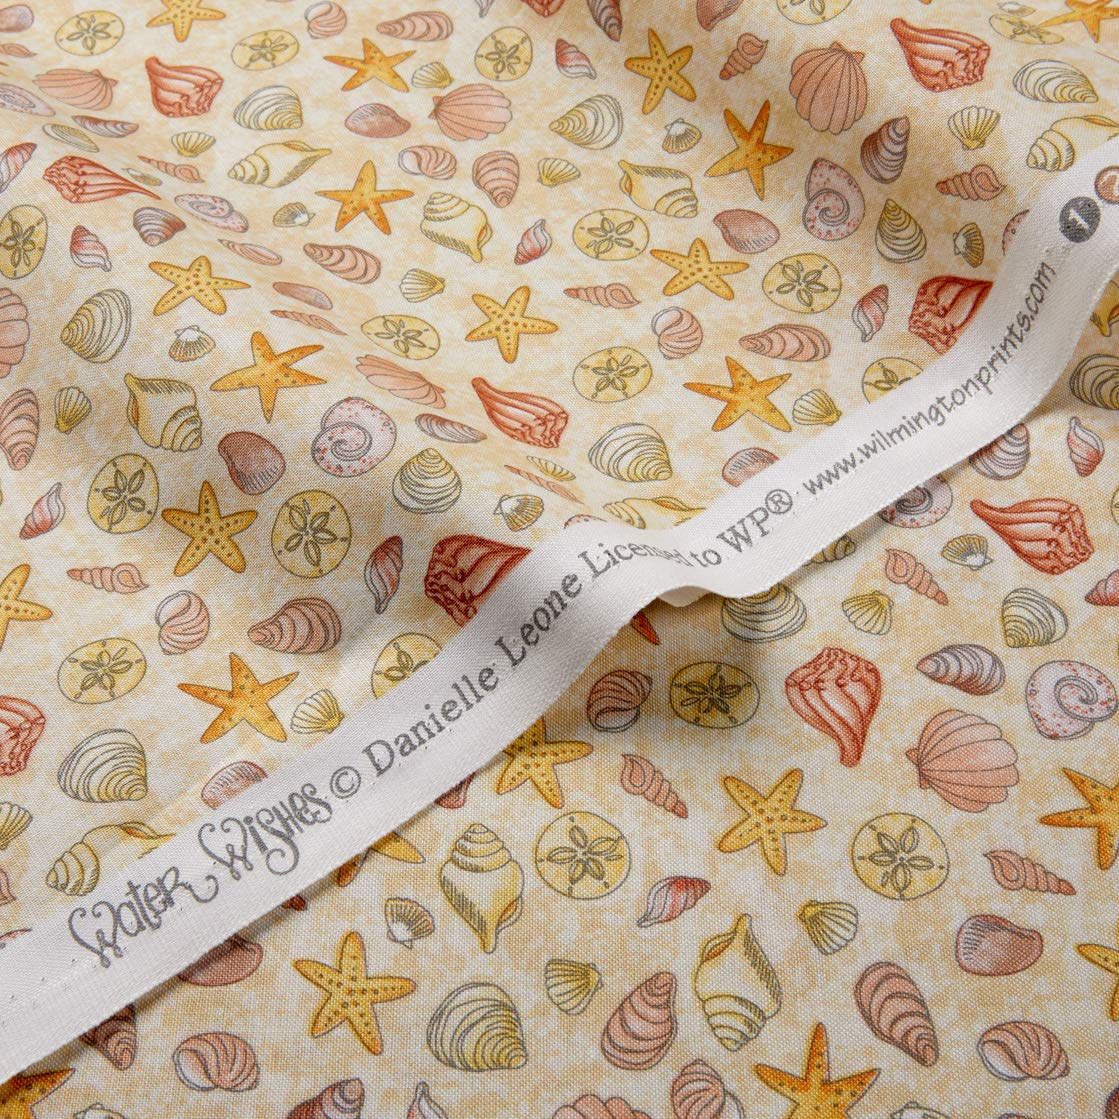 Water Wishes 9 Piece Collection Wilmington Prints Cotton Quilt Fabrics Sewing Quilting Material-Choose Your Cut